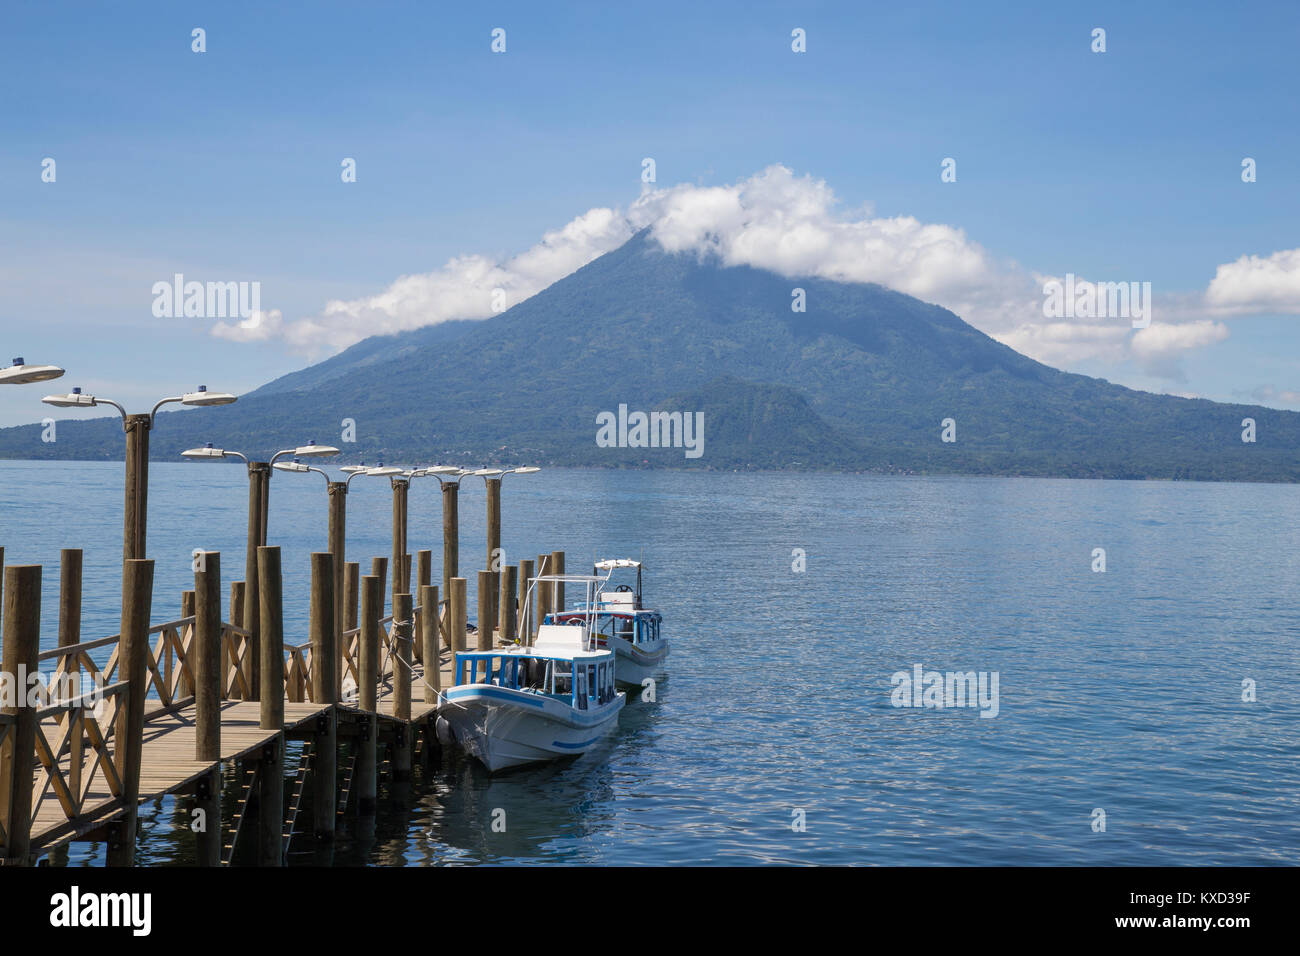 Boats moored by pier on Lake Atitlan against mountains and cloudy sky - Stock Image